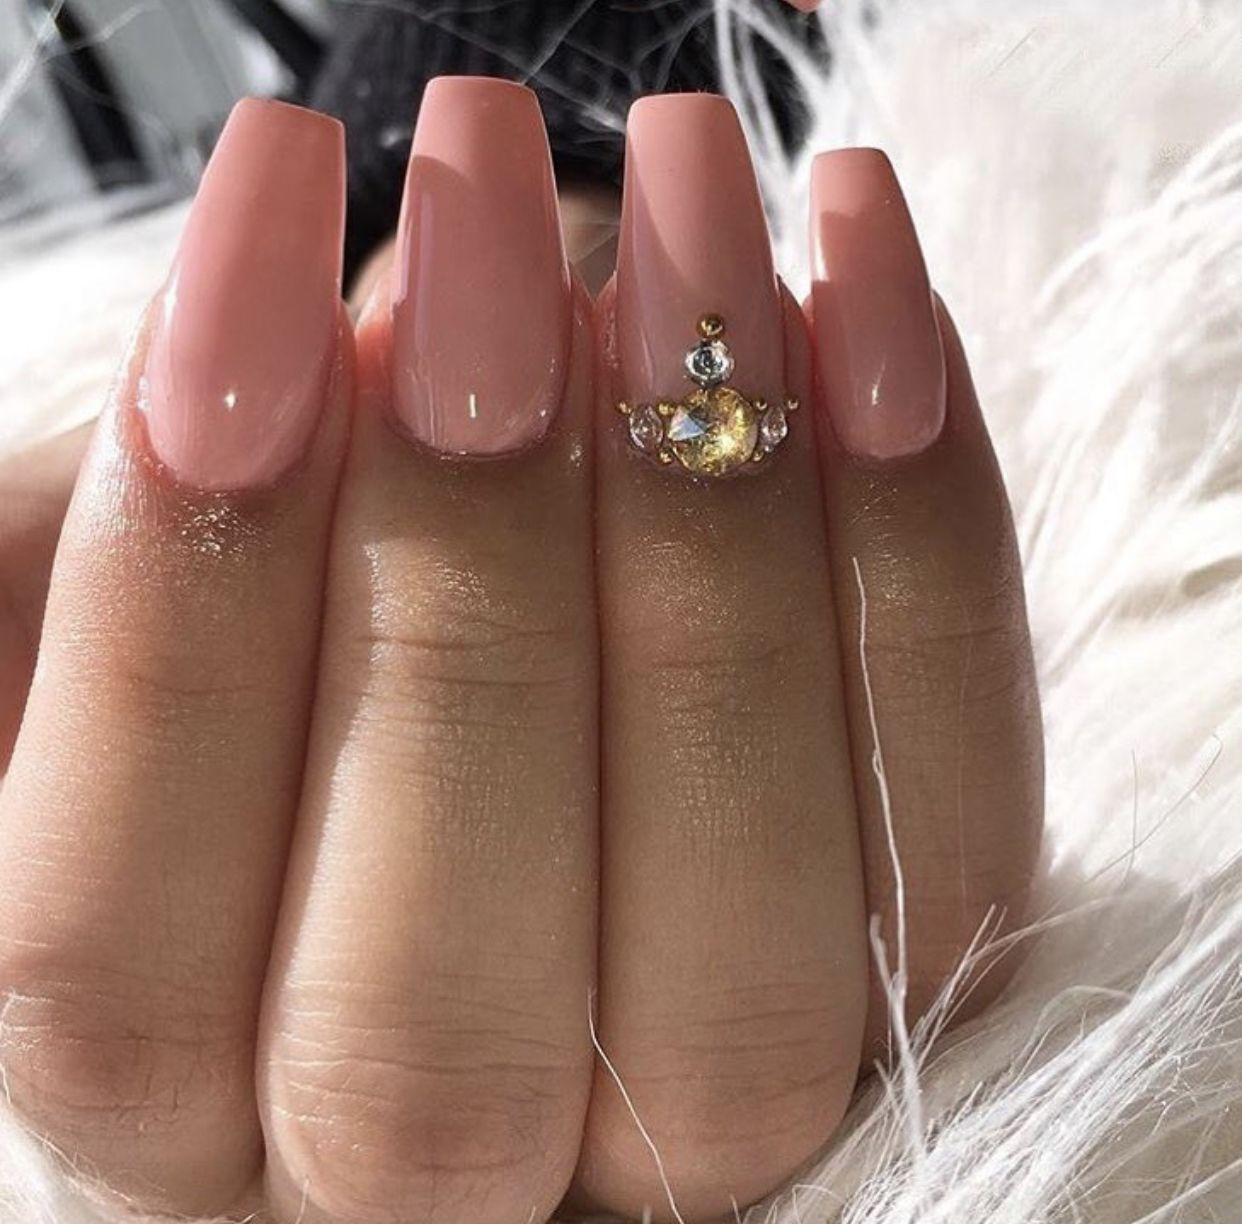 Pin by Daddy's Girl on You Nailed It Nails, My nails